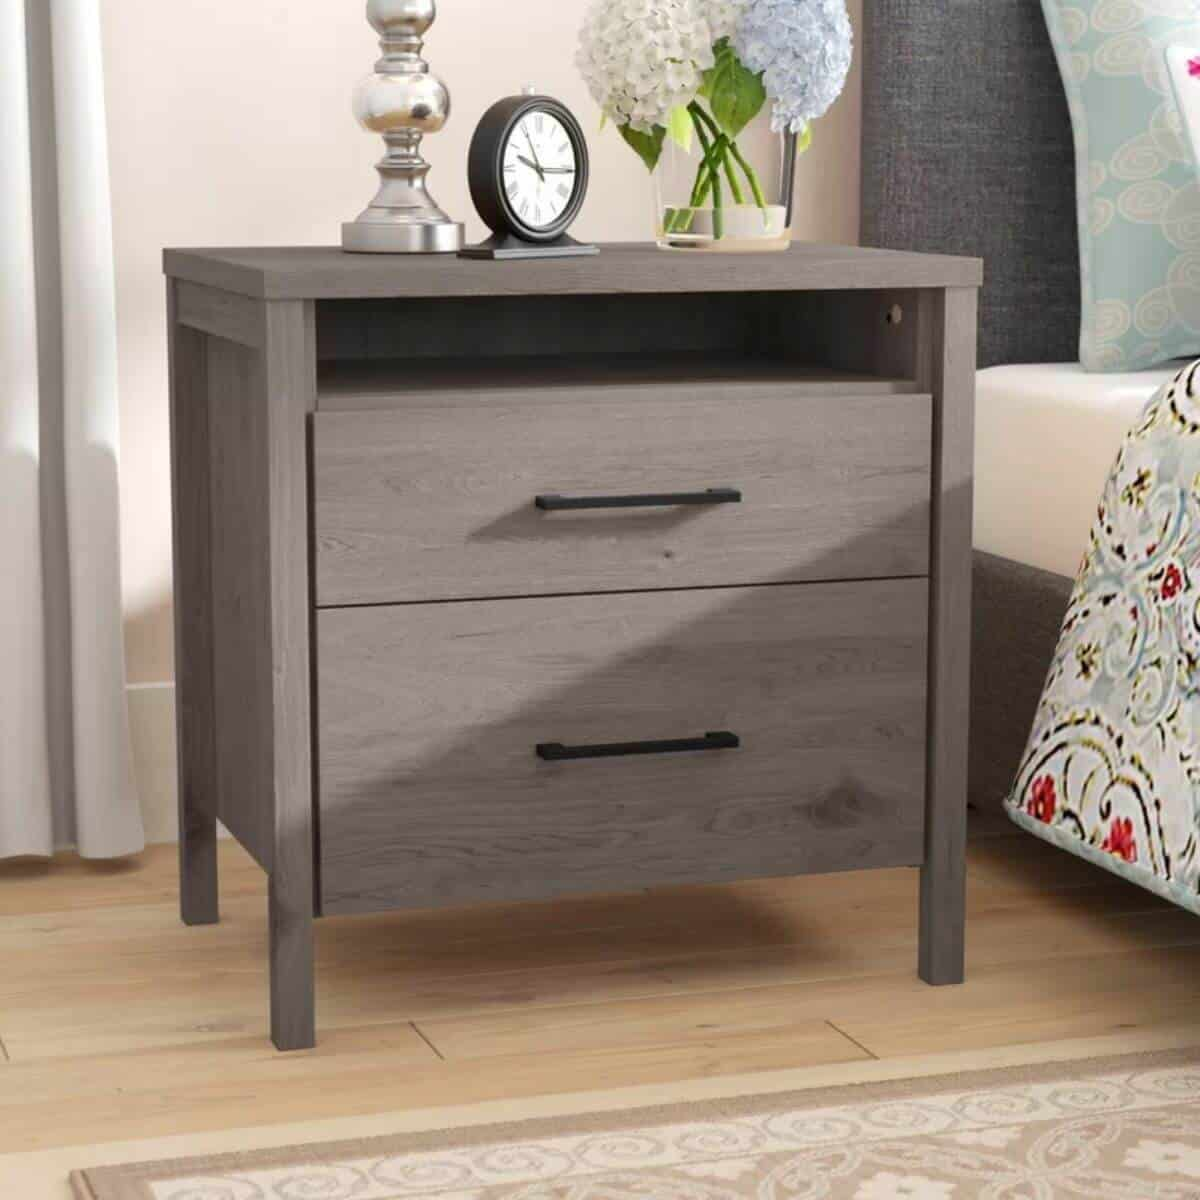 Grey maple bedside table with drawers.